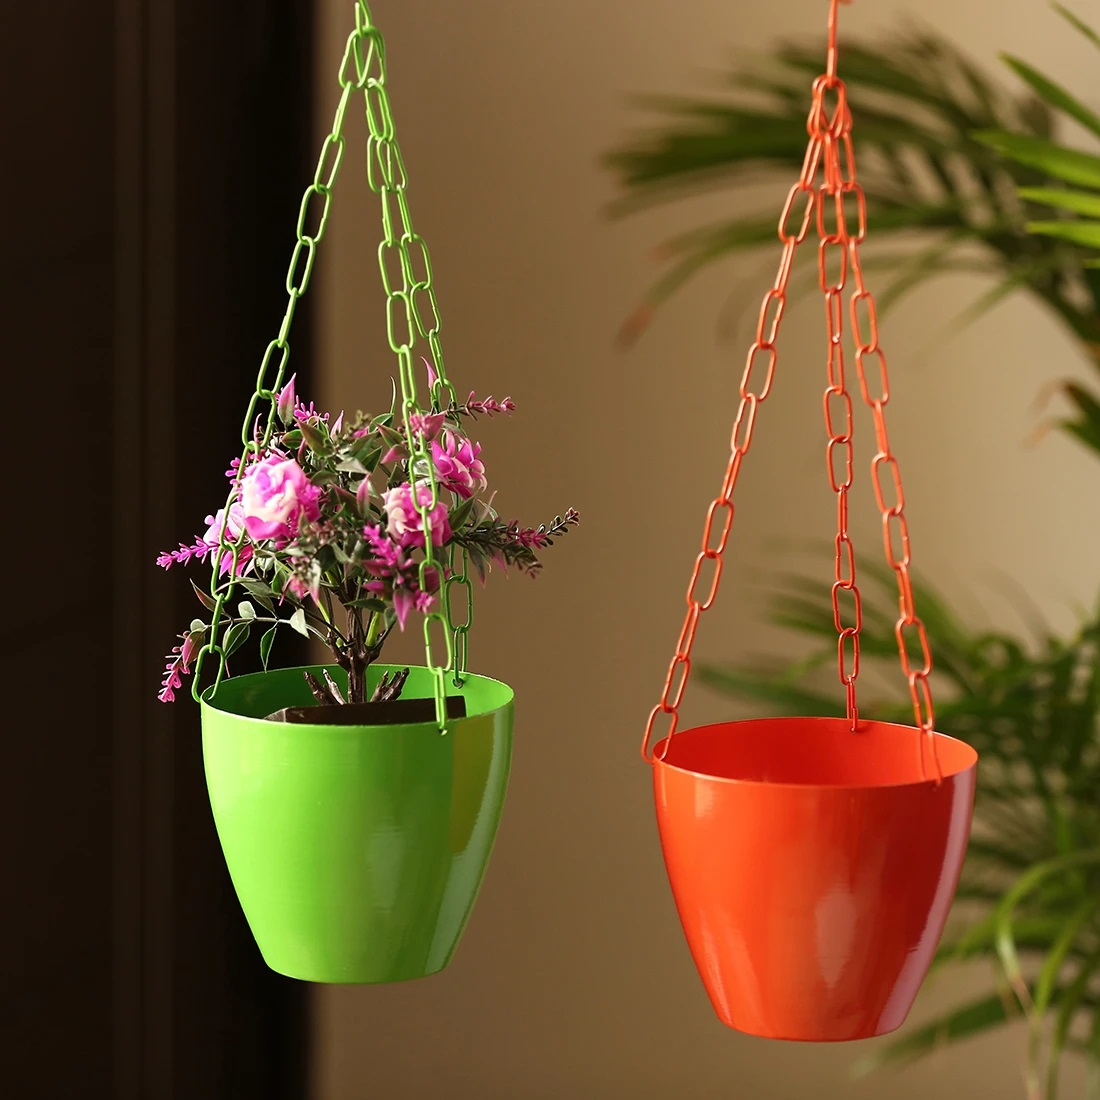 Moorni The Chained Frustums Hanging Planter Pots With Chain In Iron (Set of 2)